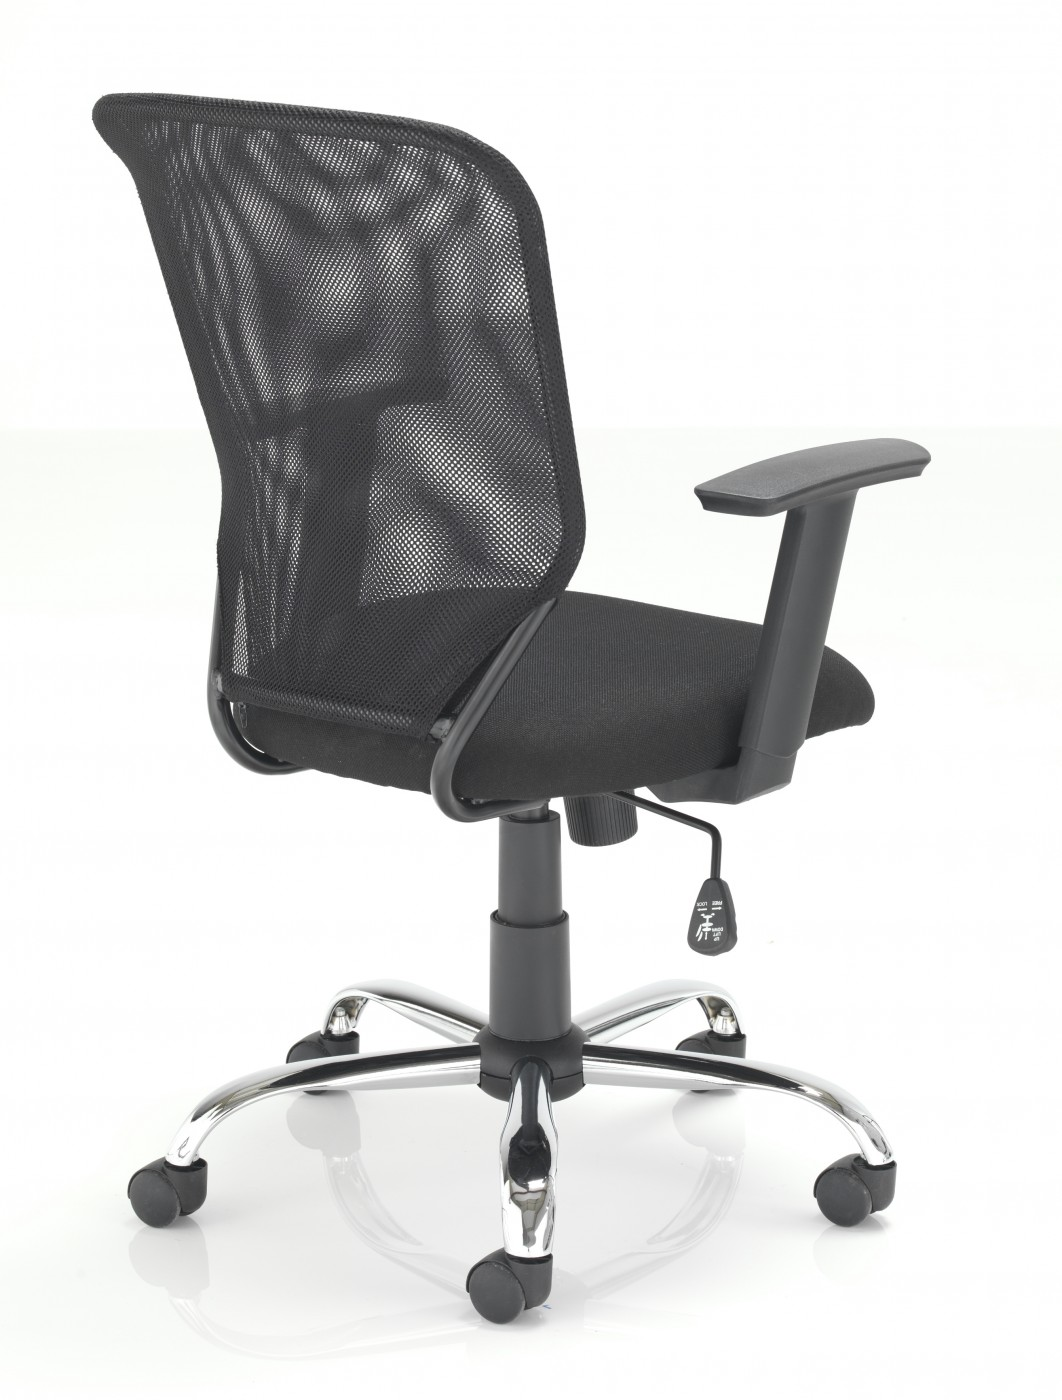 tc start mesh office chair ch1743bk enlarged view